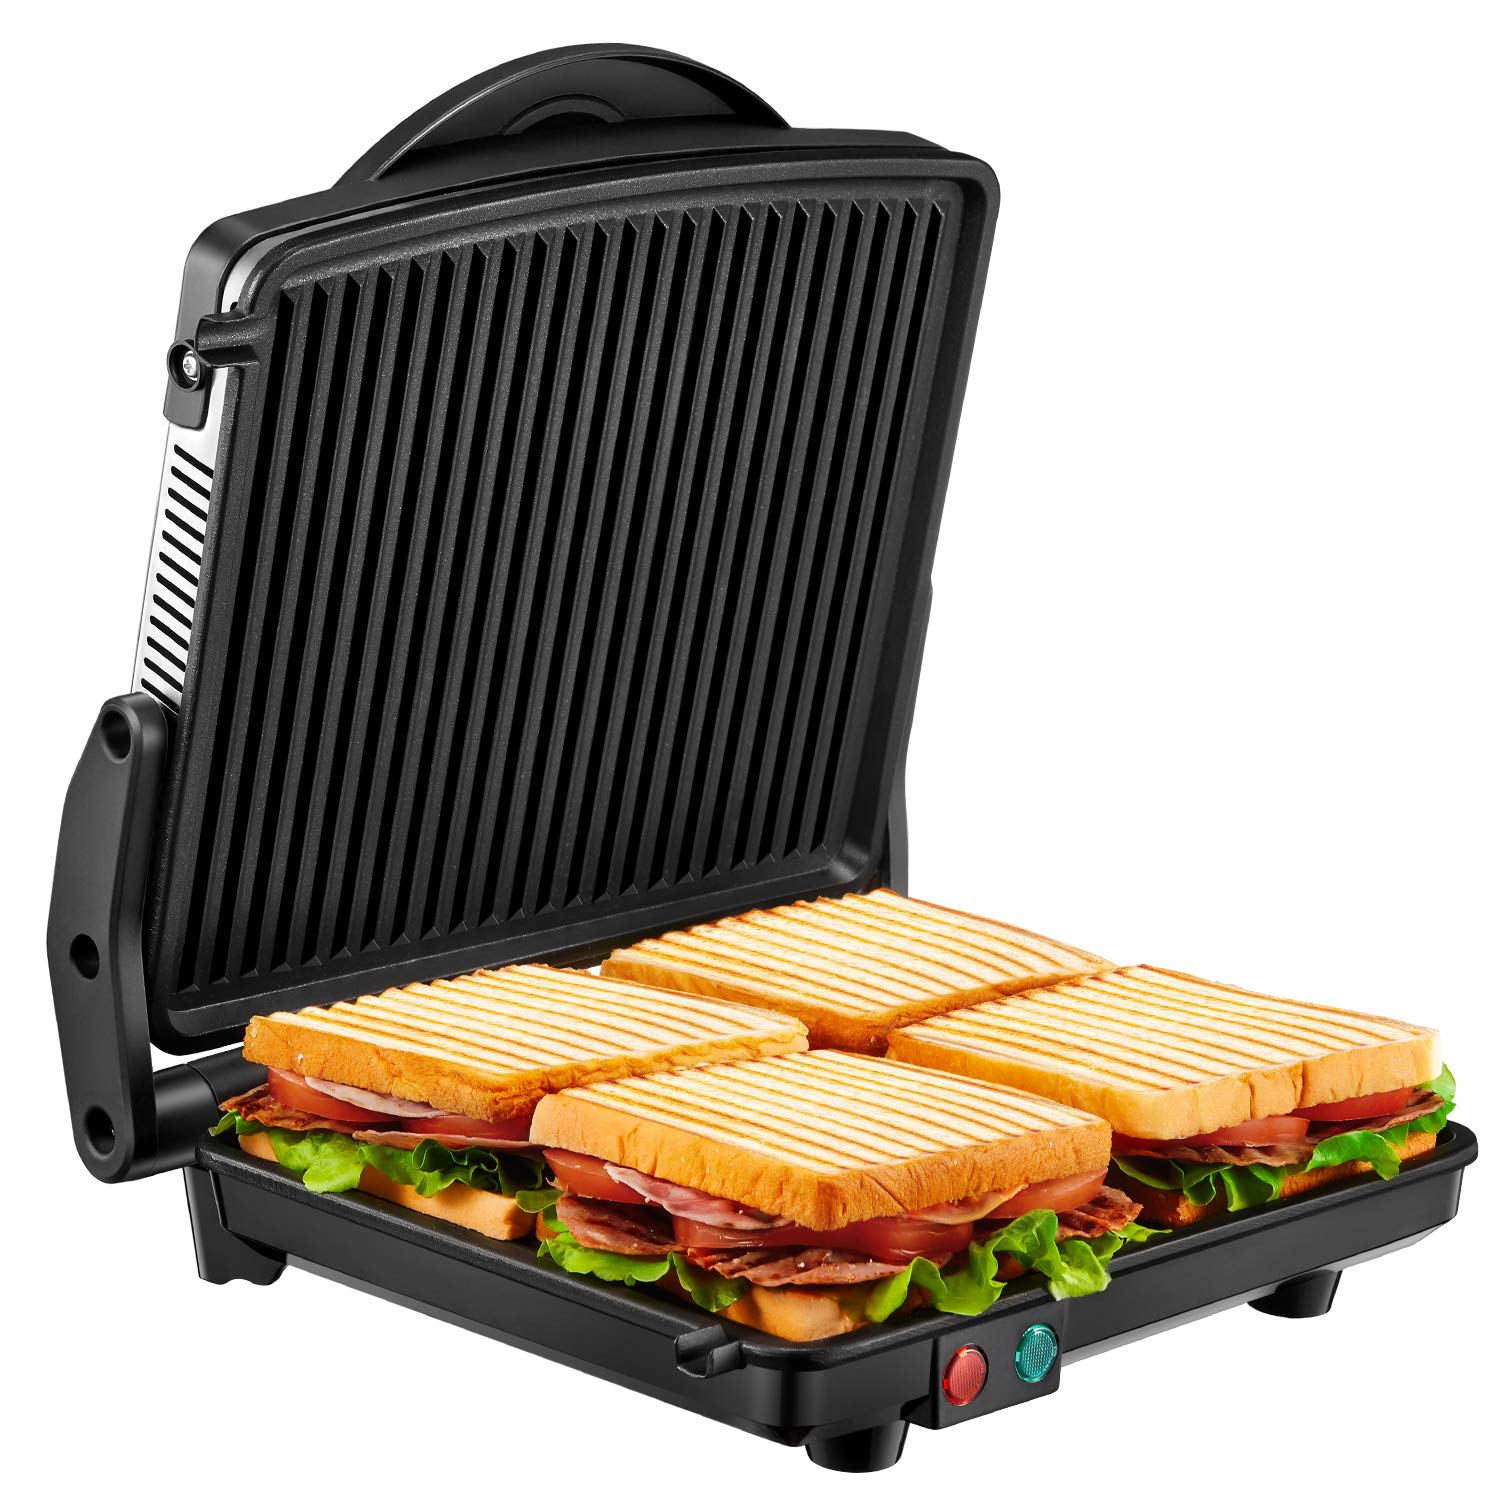 Panini Press Grill, Kealive 4-Slice Extra Large Gourmet Sandwich Maker Grill, Opens 180 Degrees to Fit Any Type or Size of Food, Non-Stick Coated Plates, Stainless Steel Surface and Drip Tray, 1200W